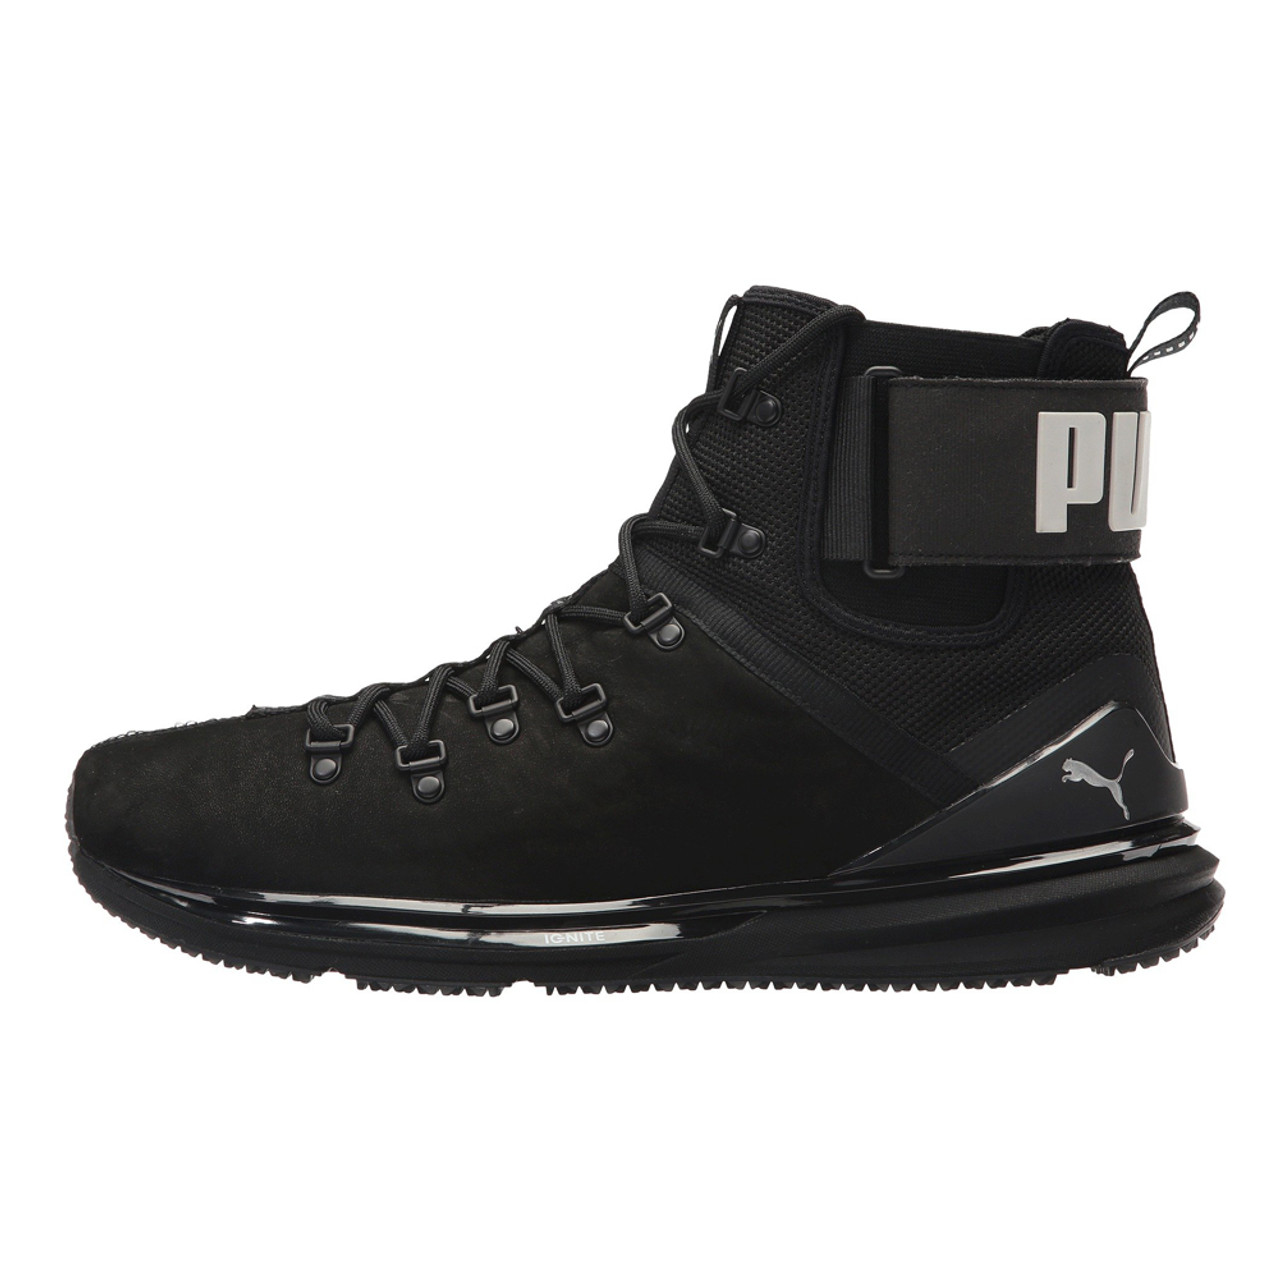 603a5a3a26be Puma Men s Ignite Limitless Boot Leather Puma Black - Shop now   Shoolu.com